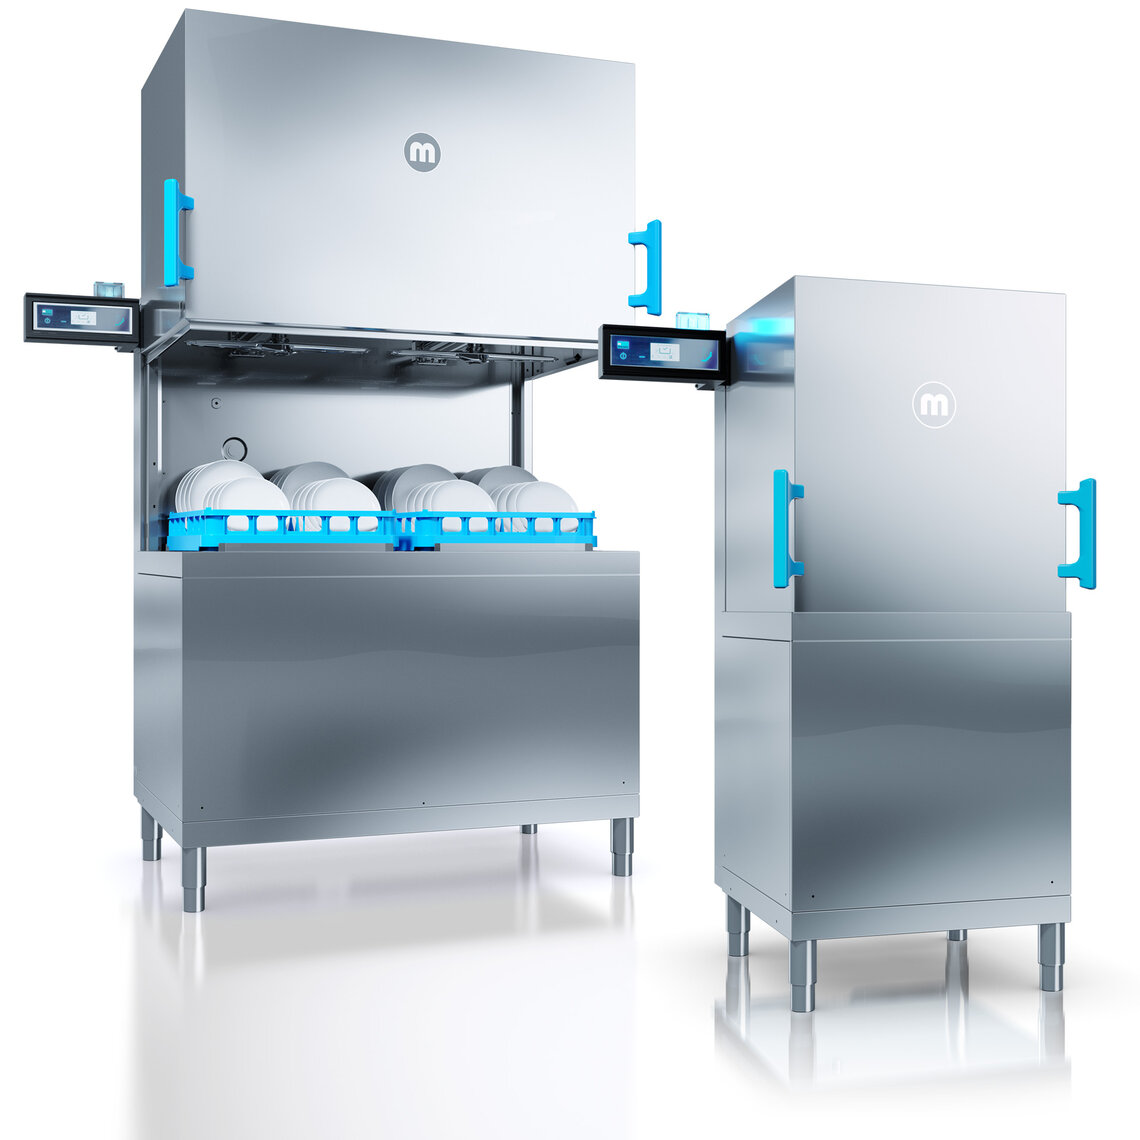 Our new hood type dishwasher sets standards in gastronomy - MEIKO